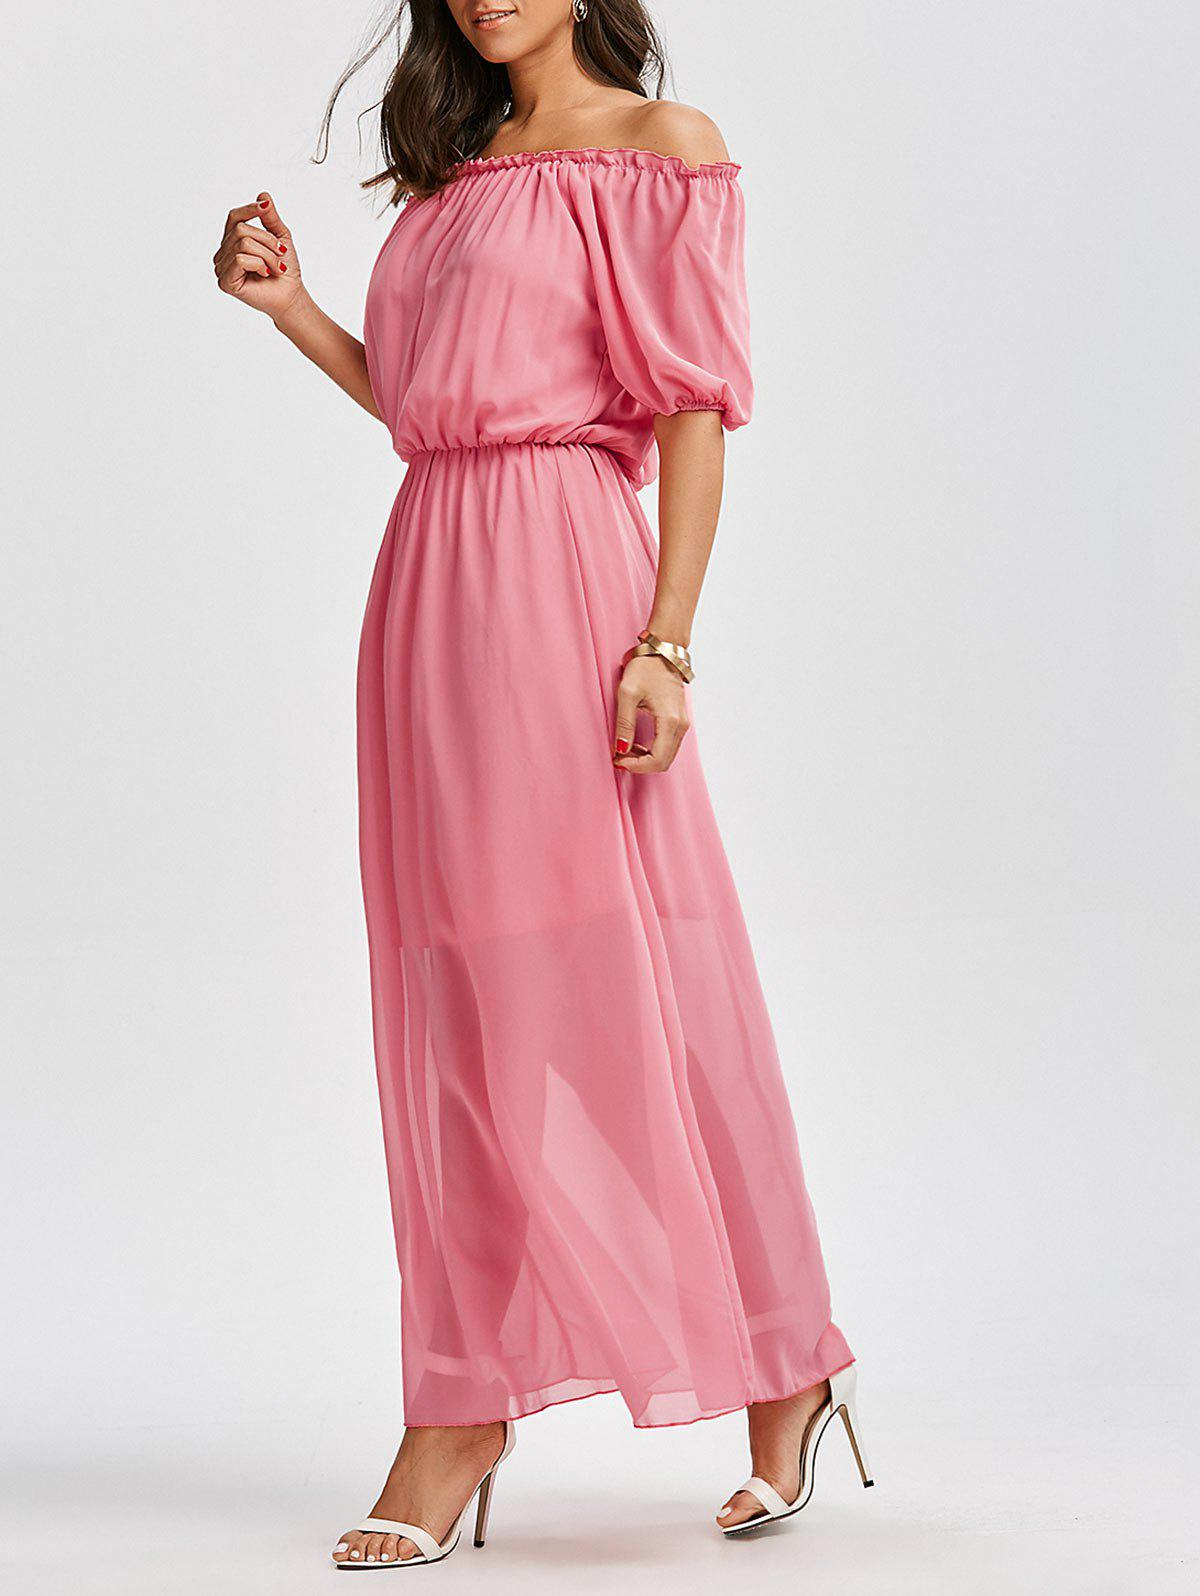 Off The Shoulder High Waist Chiffon Maxi Dress - PINK M